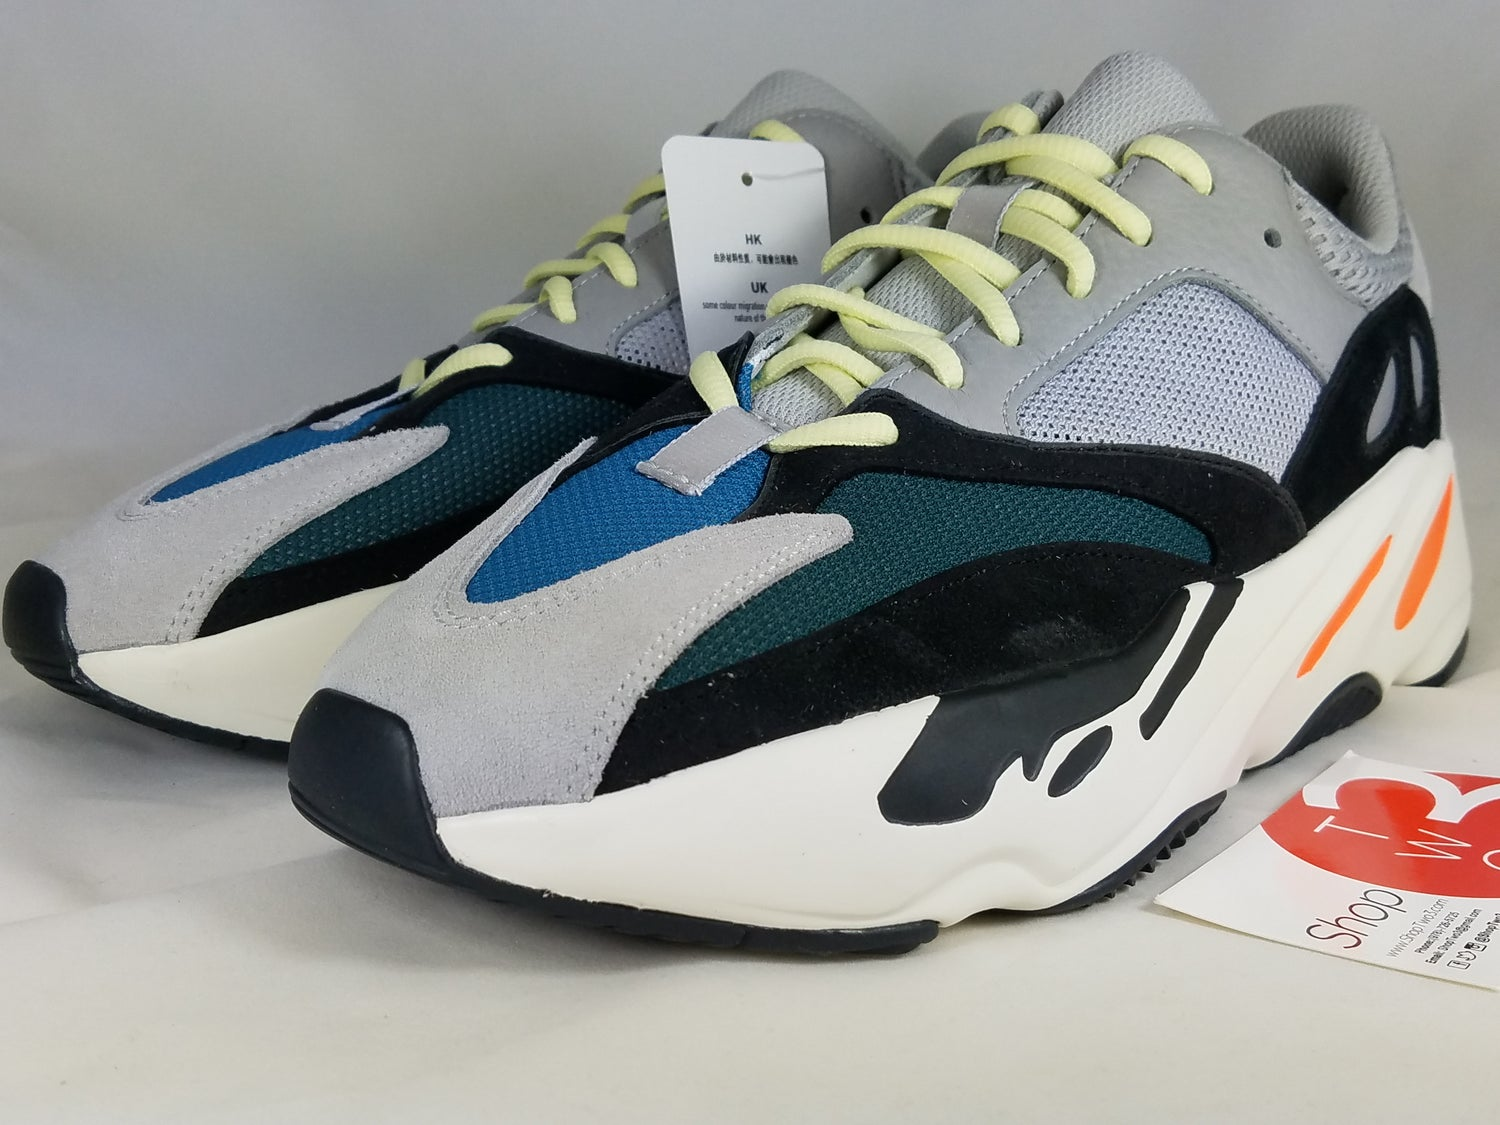 a86455277d8 Image of Yeezy Wave Runner 700 OG